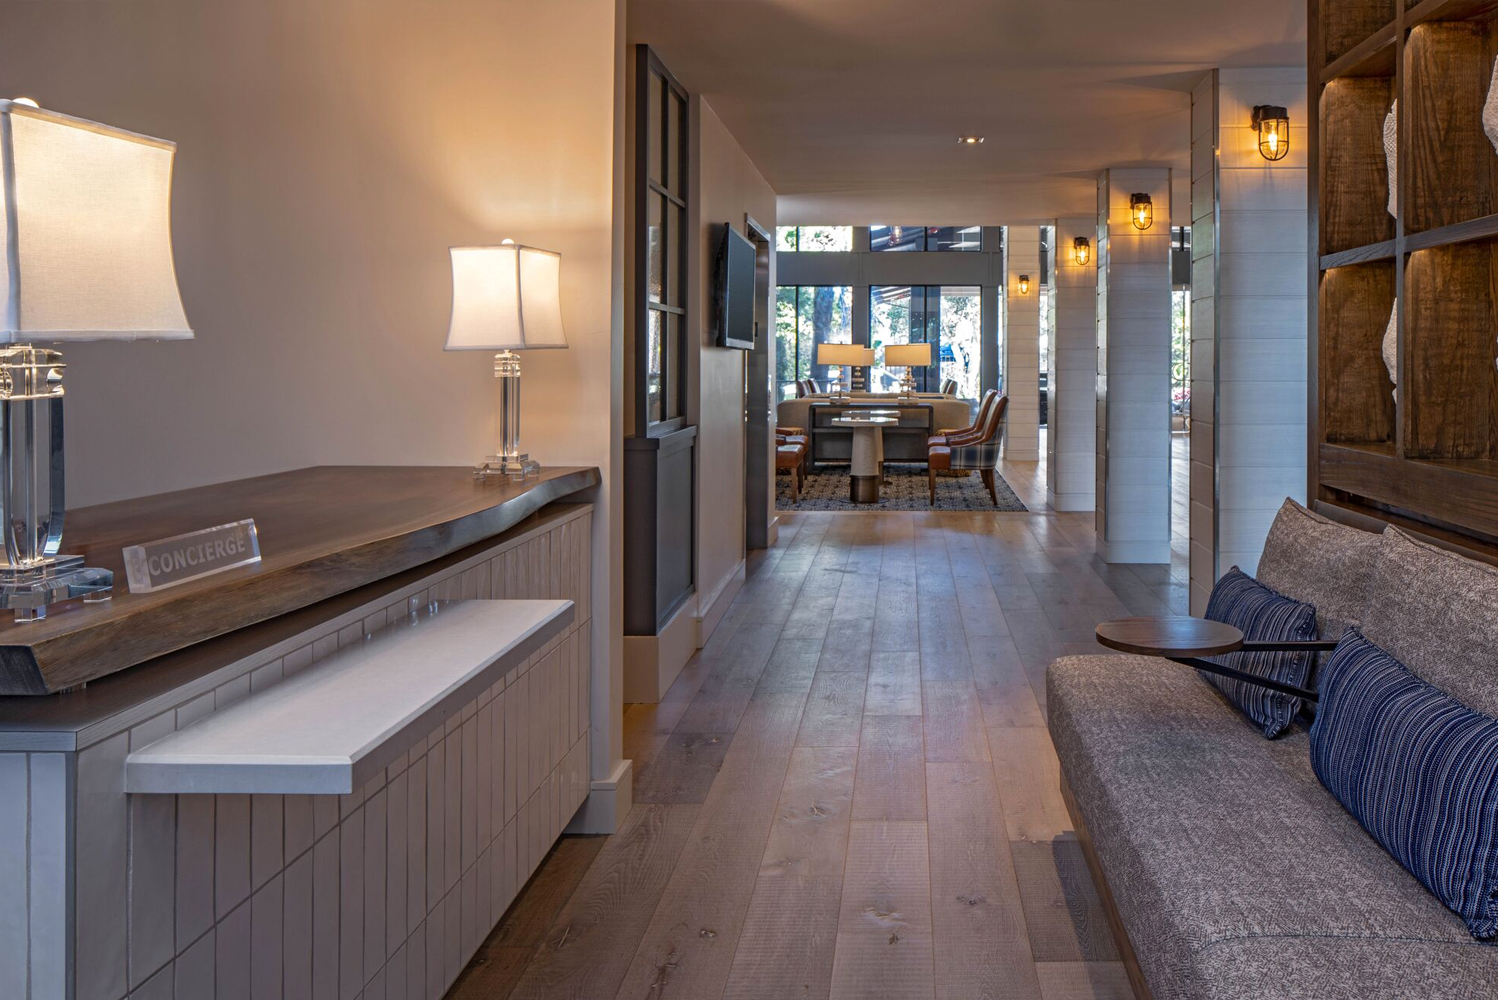 Following the renovation, changes were made to the property's 438 guestrooms, Blue Marble Spa, pool deck, two dining outlets and nearly 16,000 square feet of meeting space.